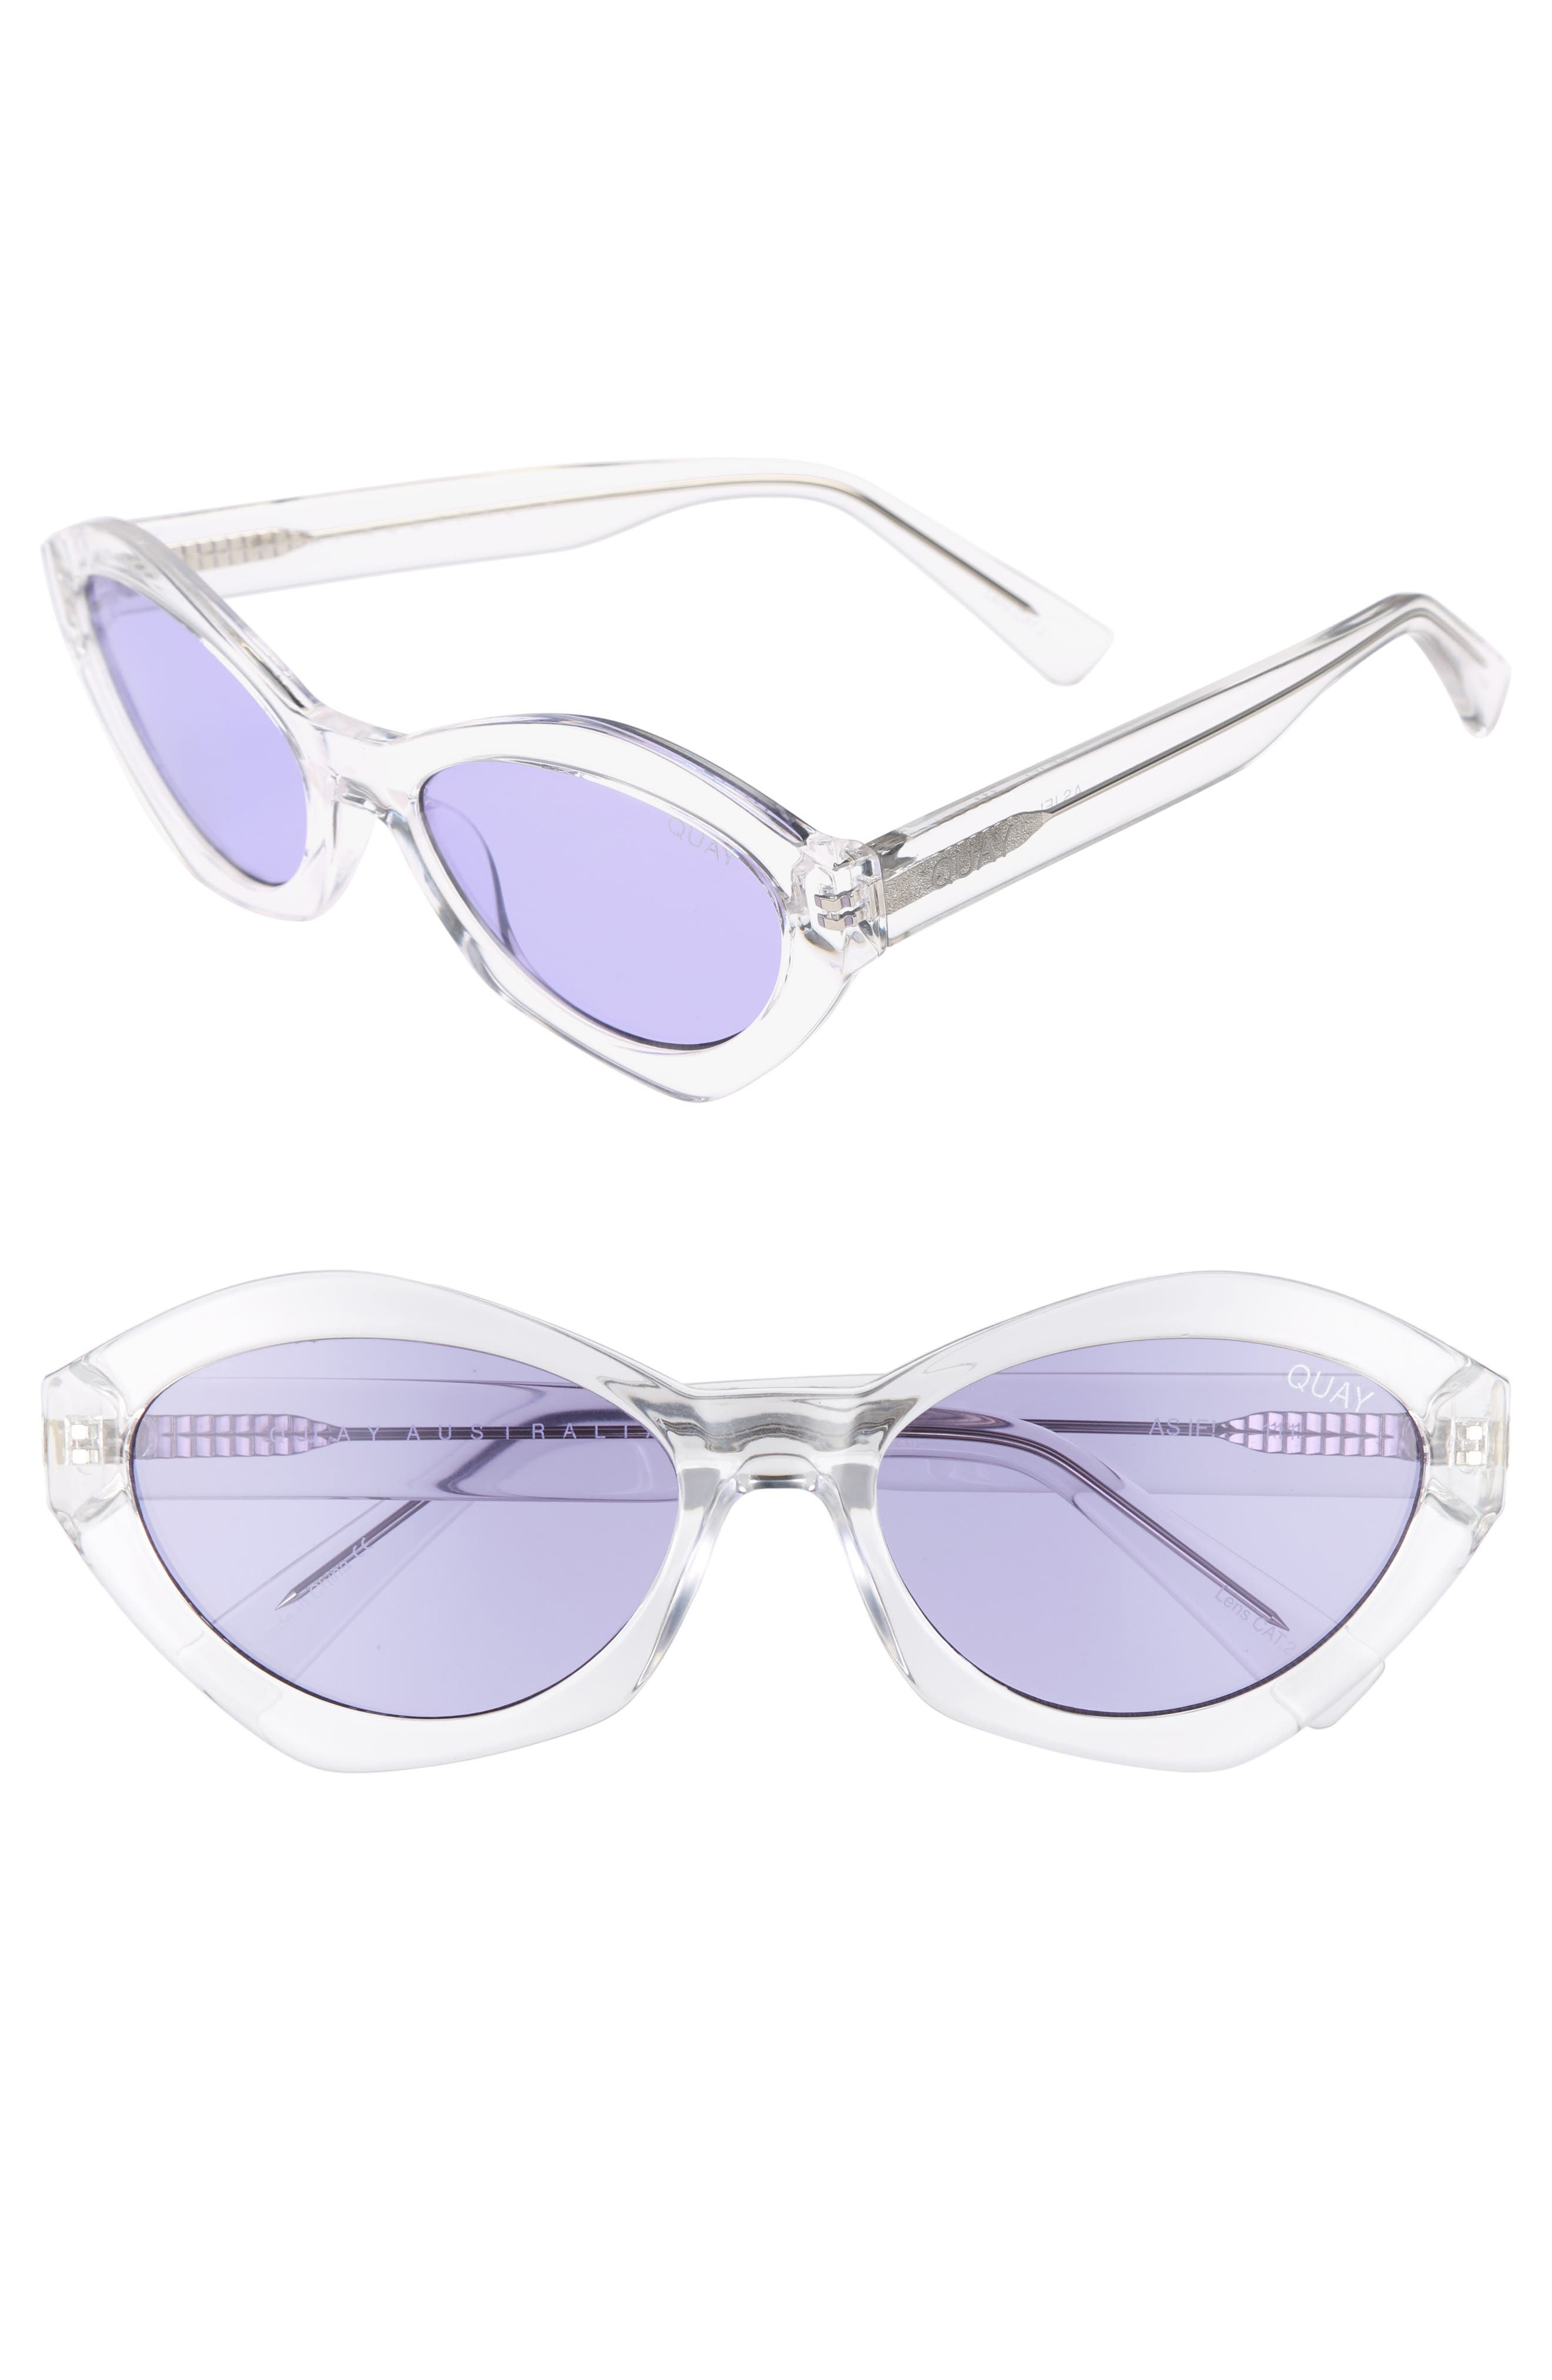 54mm As If Oval Sunglasses,                             Main thumbnail 1, color,                             Clear/ Purple